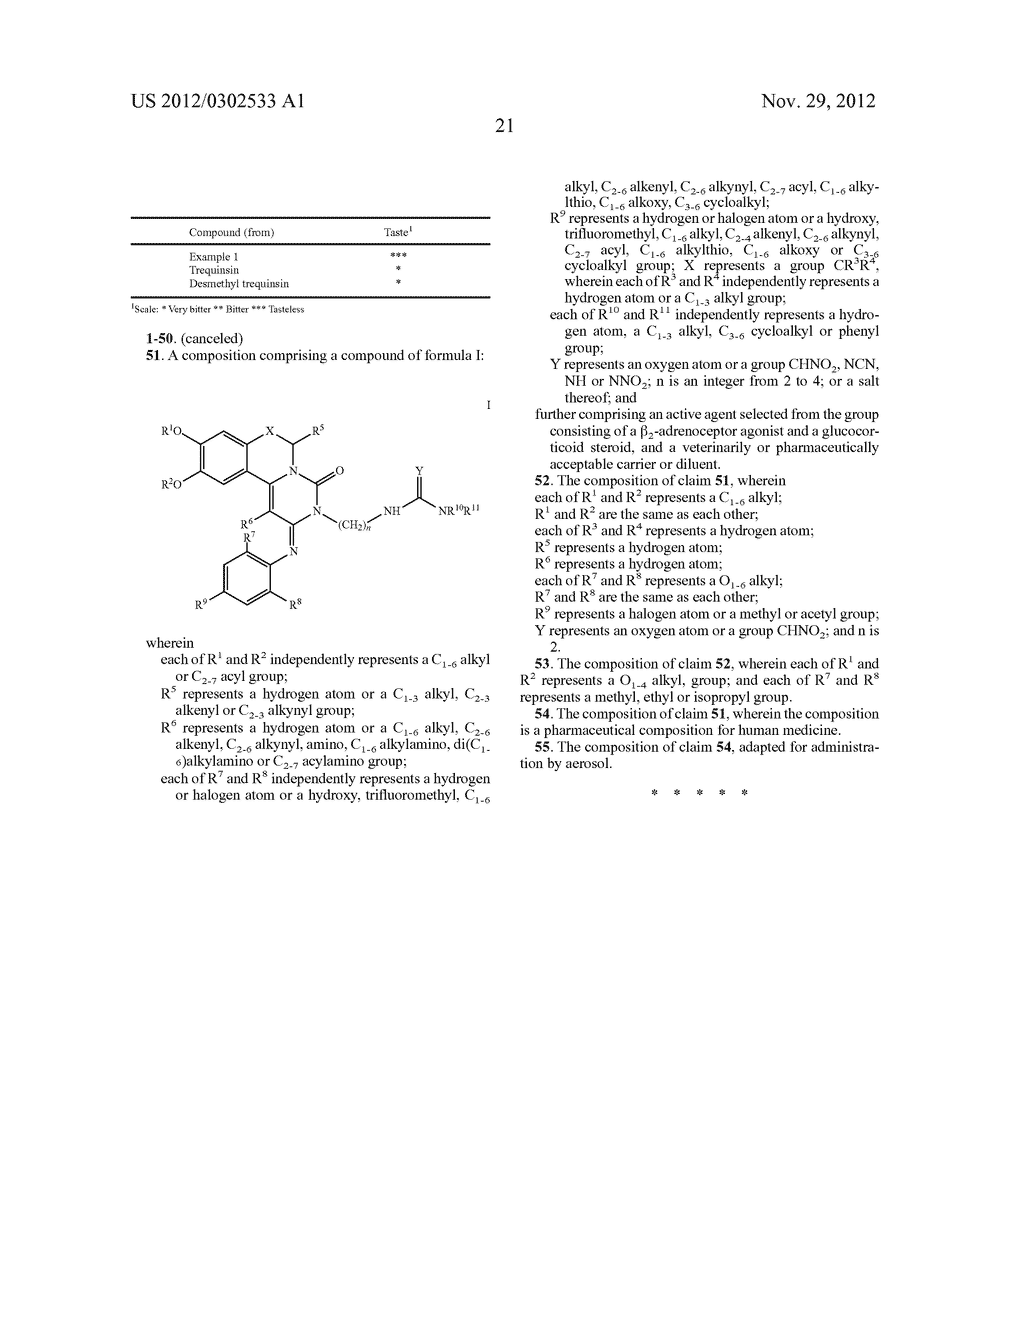 DERIVATIVES OF PYRIMIDO [6,1-A] ISOQUINOLIN-4-ONE - diagram, schematic, and image 27